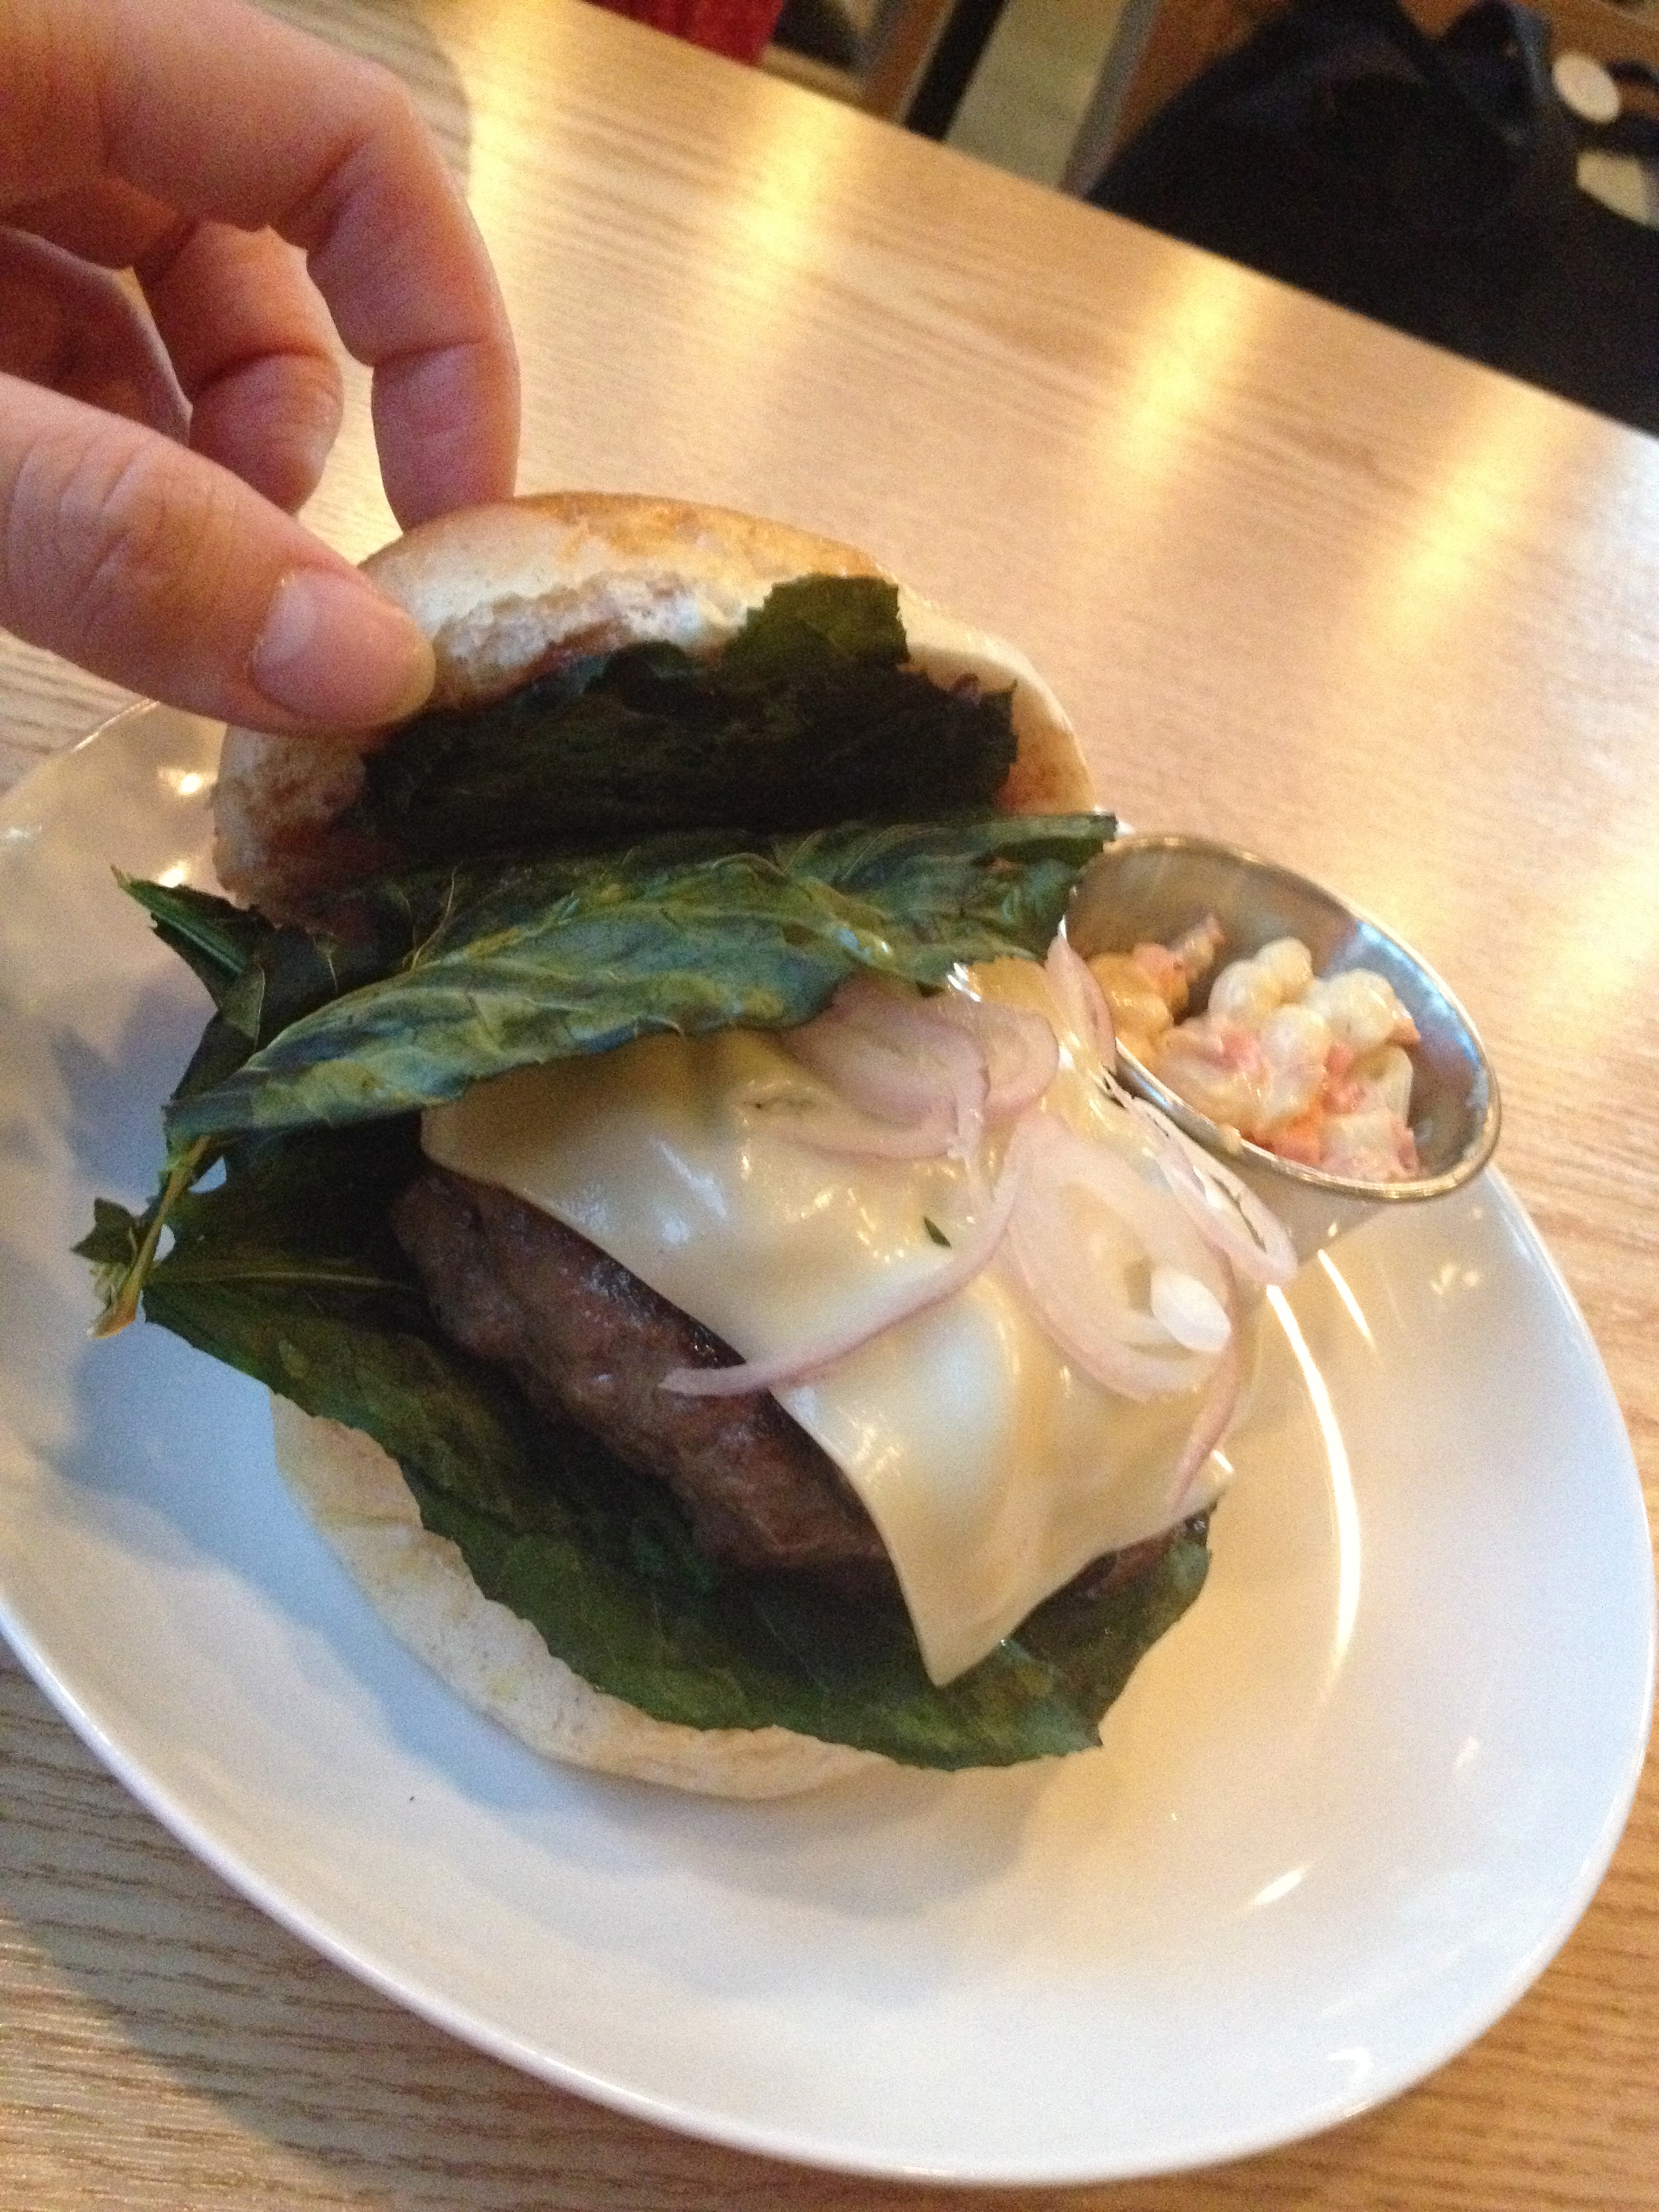 The Kale chip was oven toasted to a crisp and added such a nice crunchy texture to the burger.